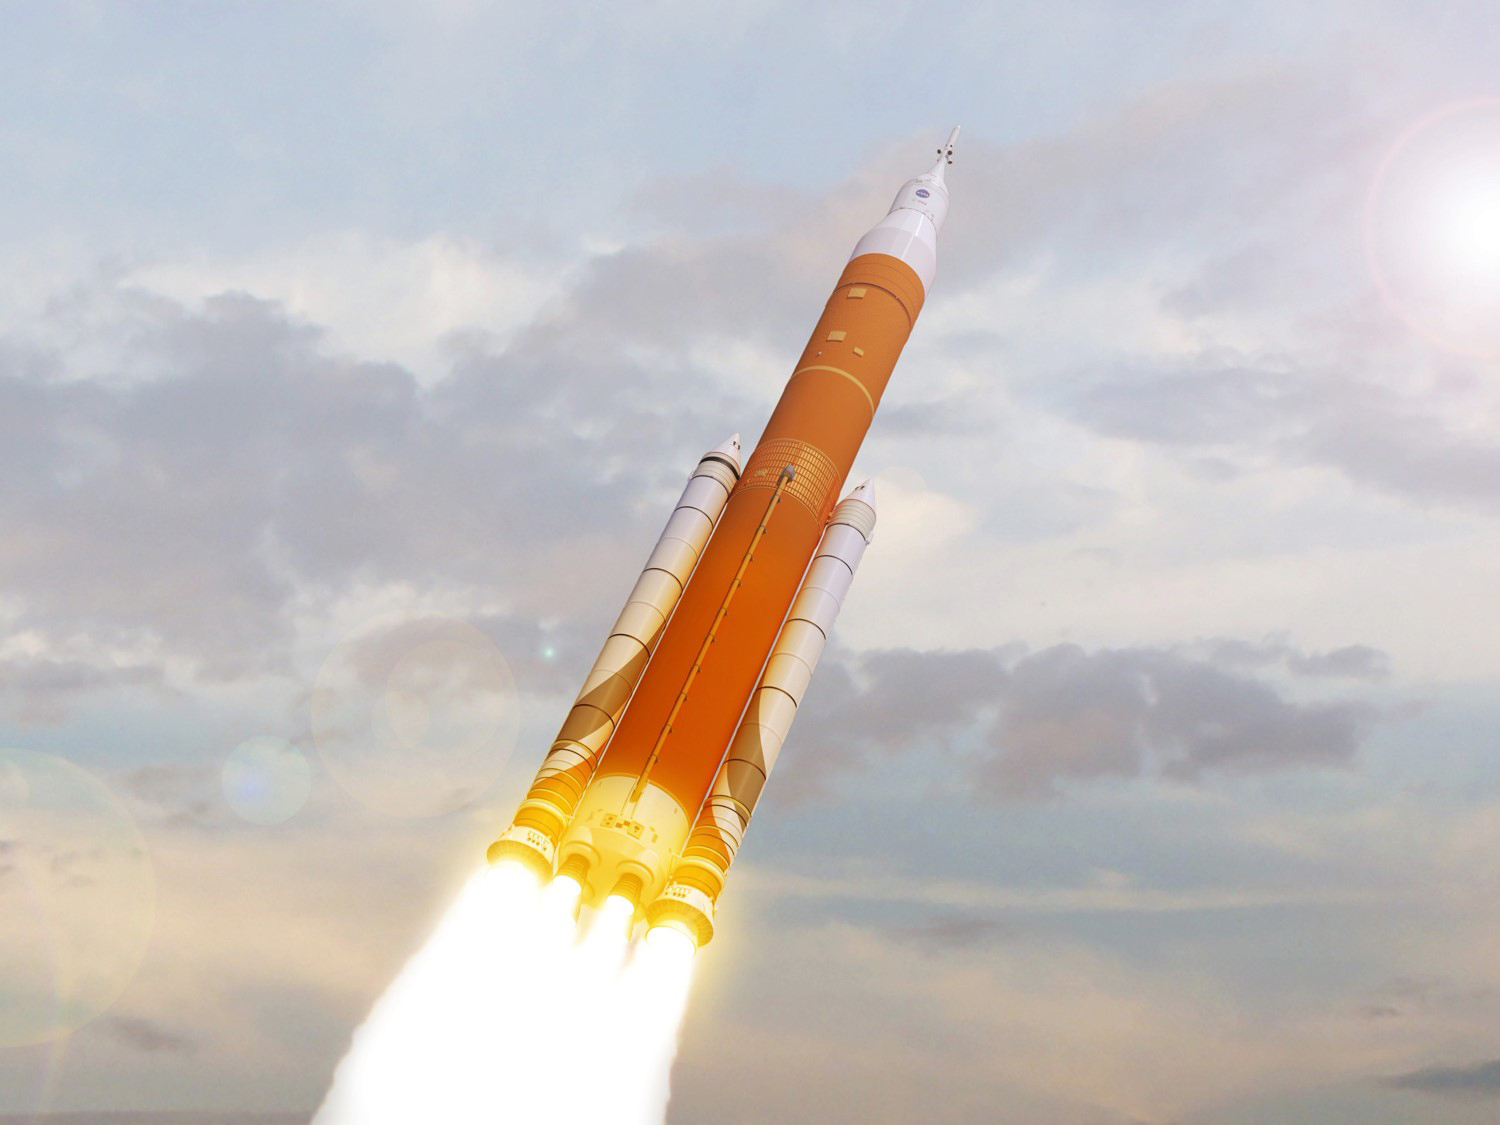 NASA Can't Afford its Planned Manned Mars Mission